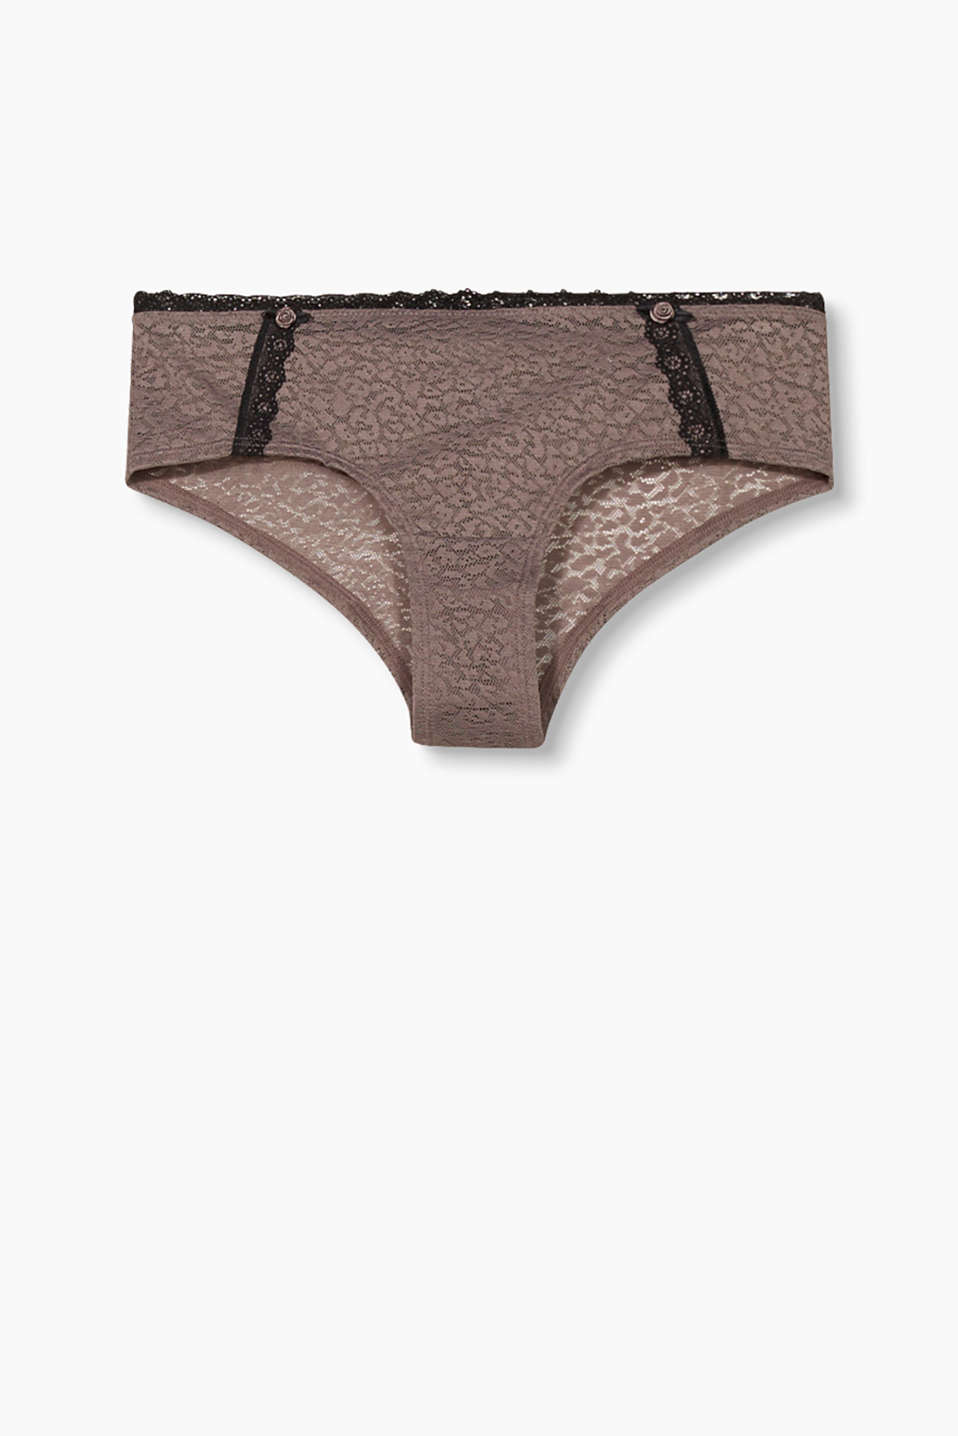 Collection: NALA - shorts in two kinds of lace